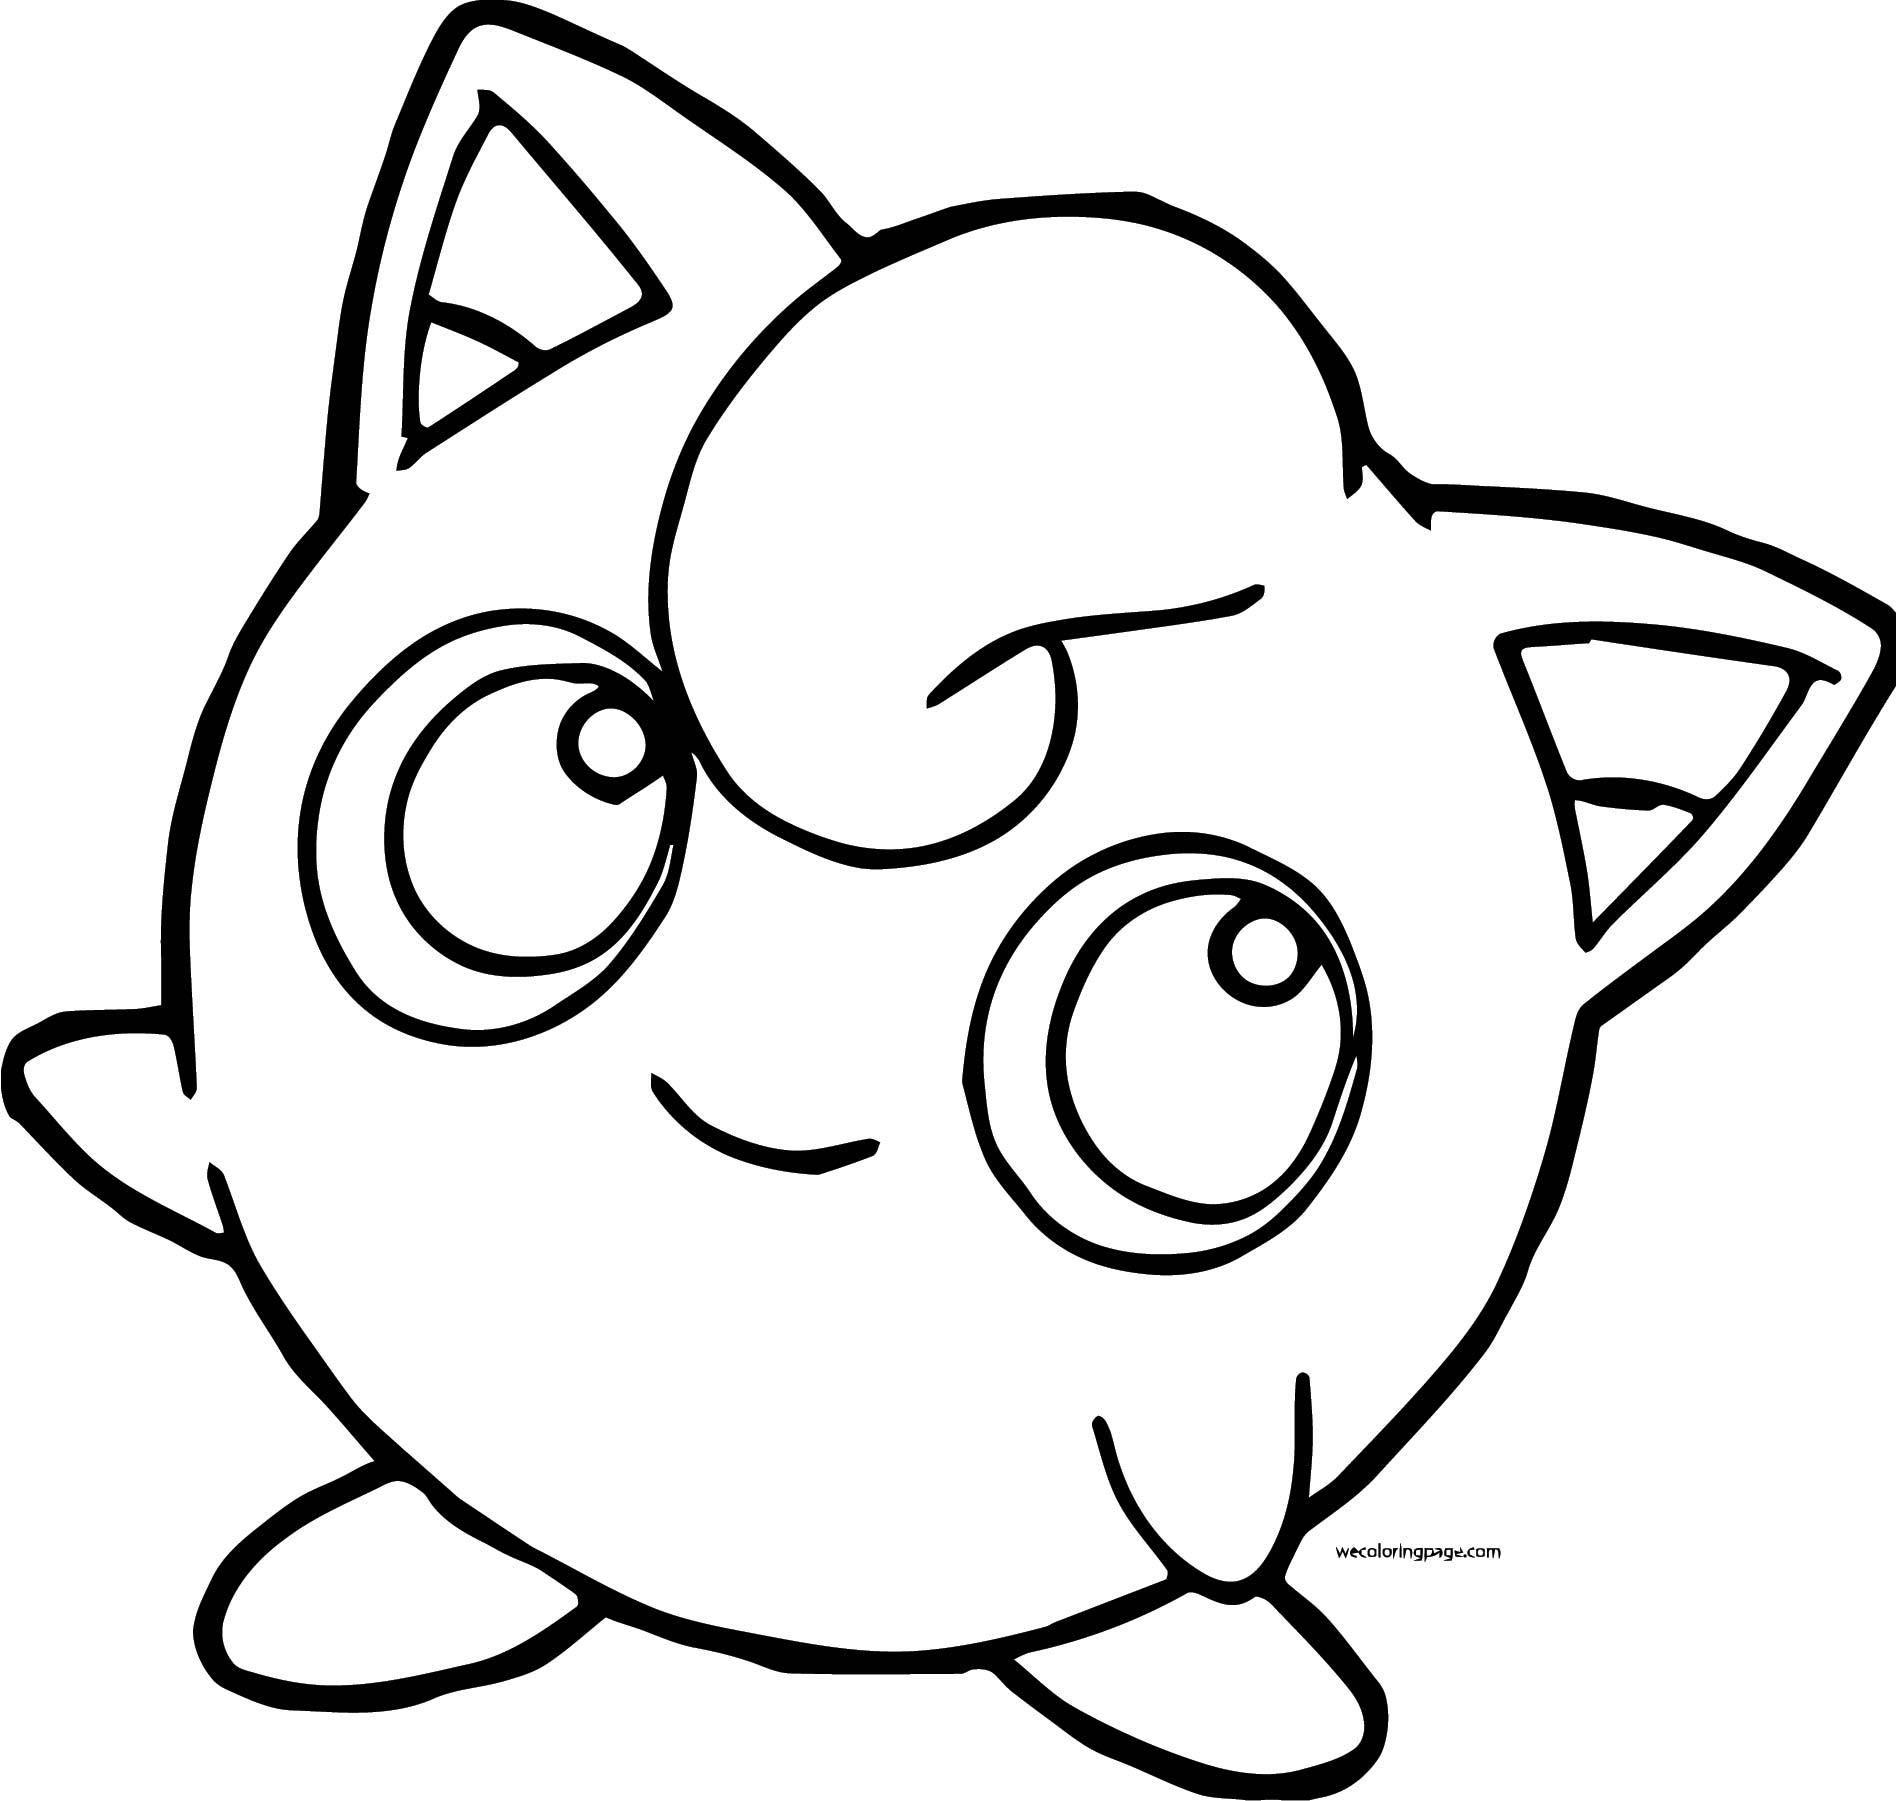 Jigglypuff Coloring Page WeColoringPage 022